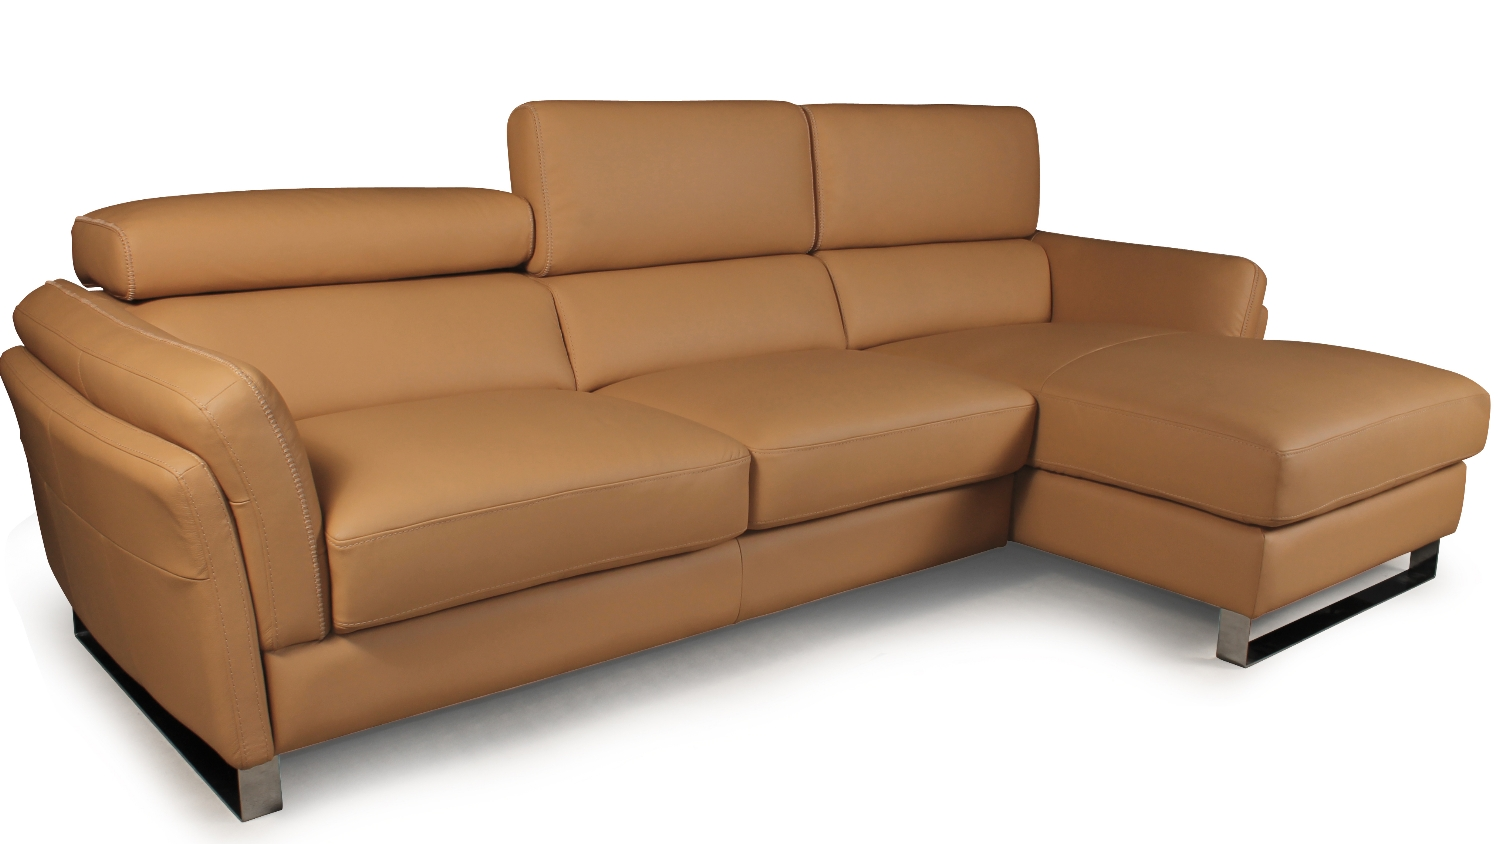 Harper 3 seater sofa with chaise lounge harvey norman for 3 seat sofa with chaise